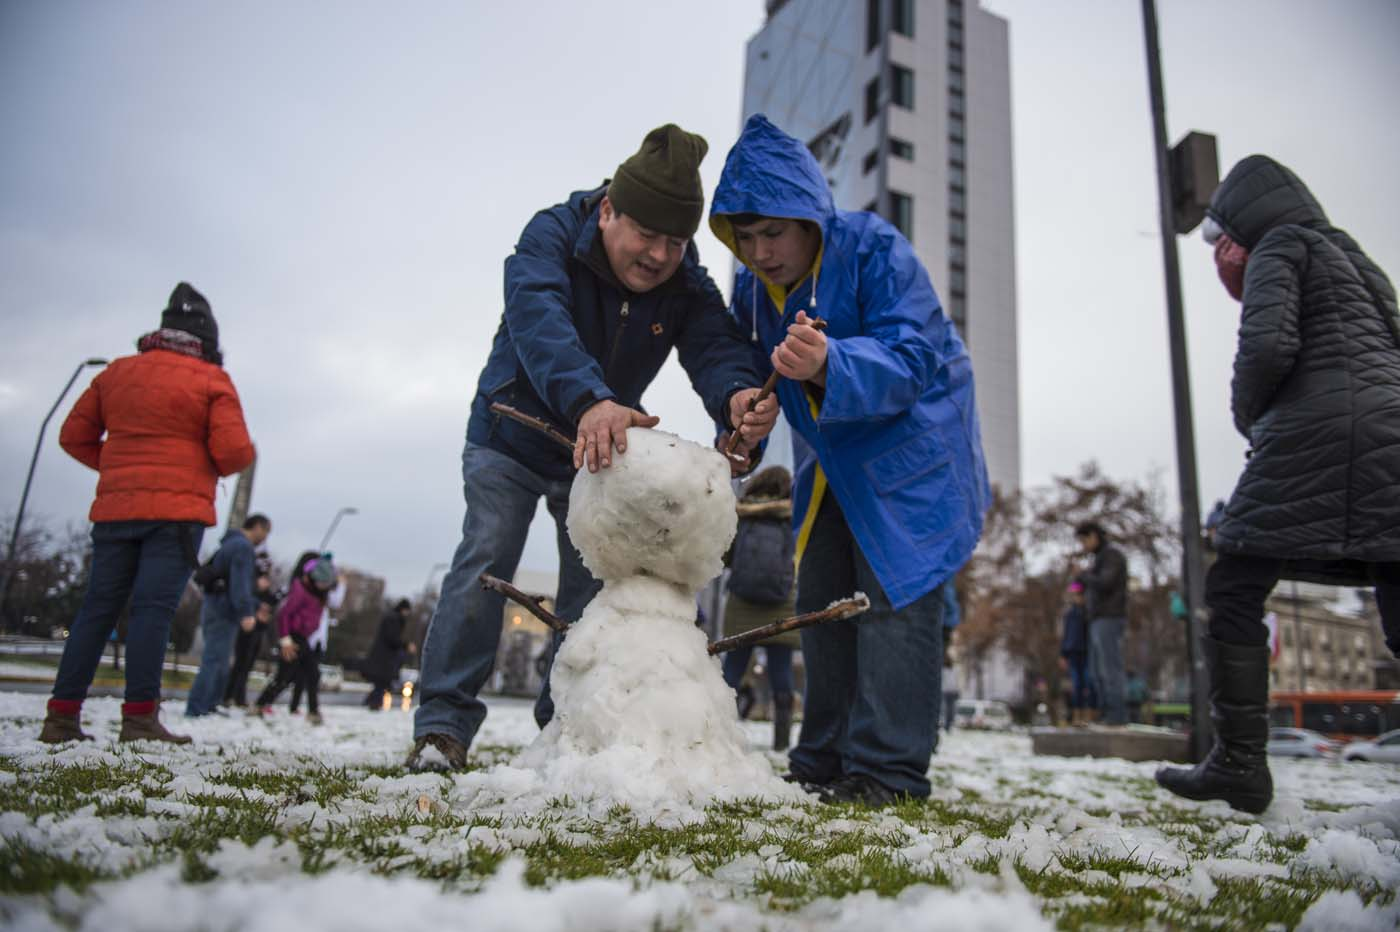 People make a snowman in Santiago on July 15, 2017.  An unusual snowfall --the first of such intensity since 2007-- surprised the inhabitants of the Chilean capital, causing a few power cuts and minor traffic jams, in particular in the eastern areas of the capital, the closest to the Andes mountain range. / AFP PHOTO / Martin BERNETTI